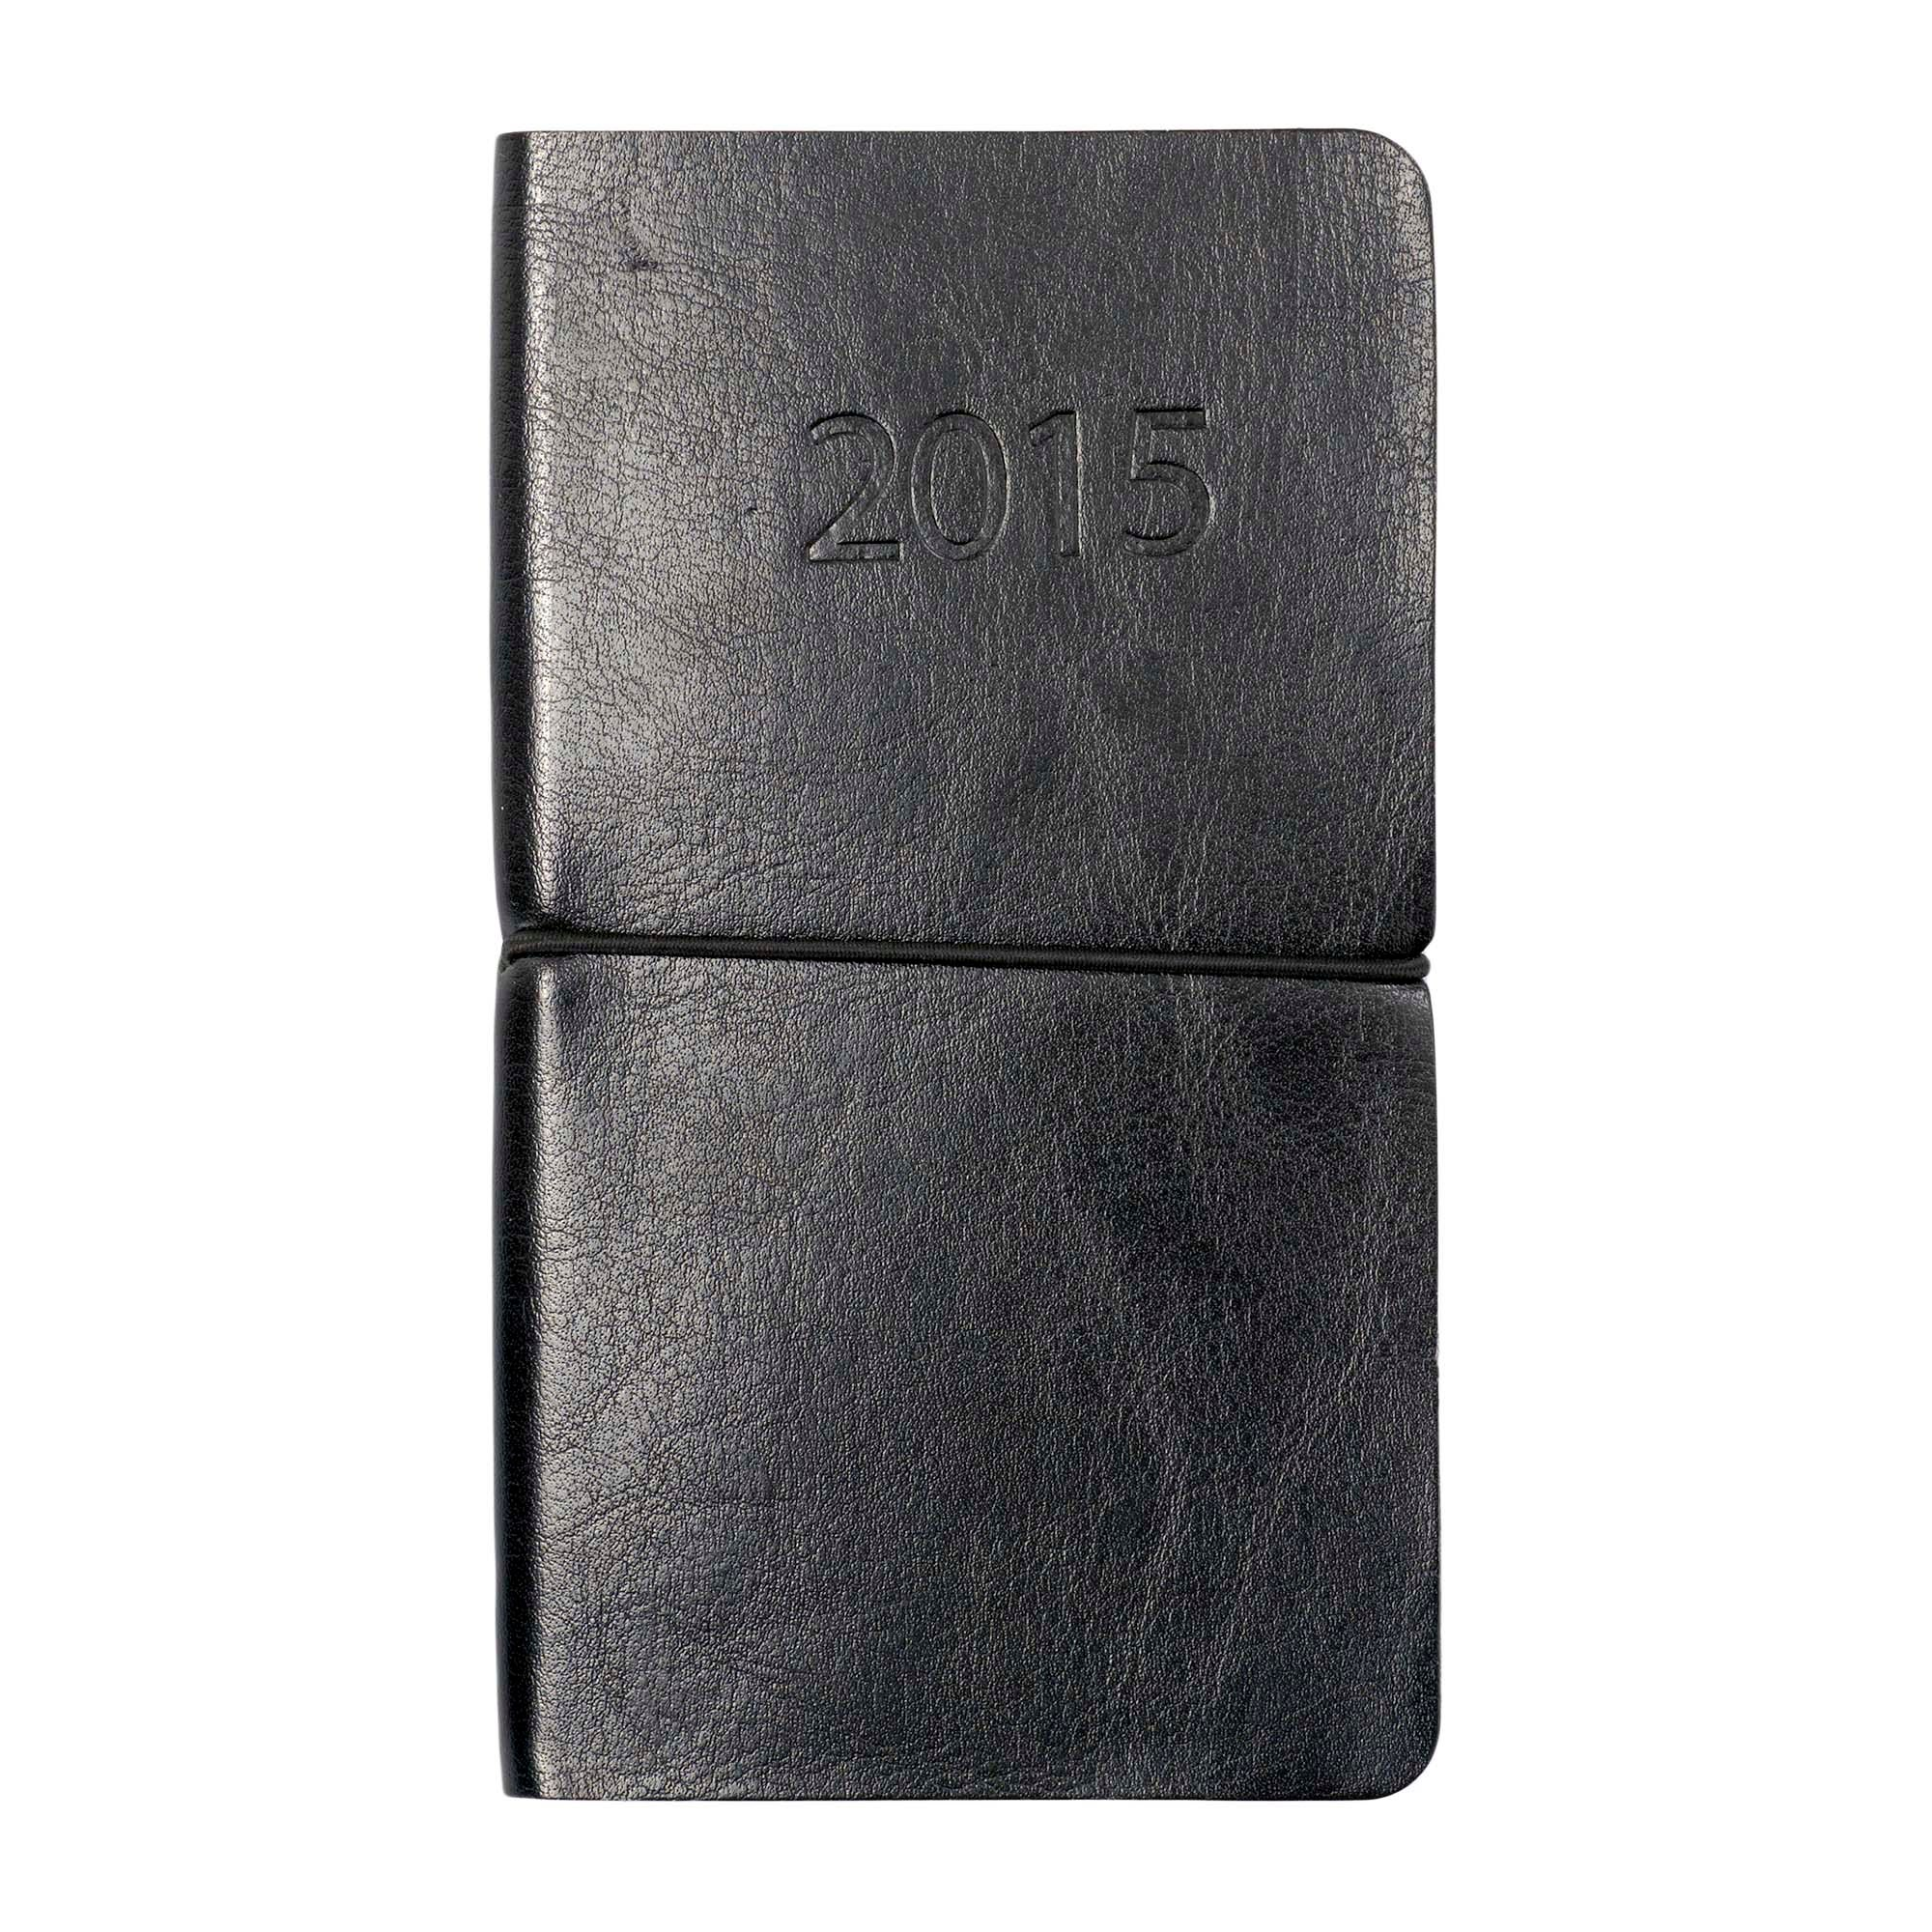 Black Flexi Cover 2015 Slim Diary